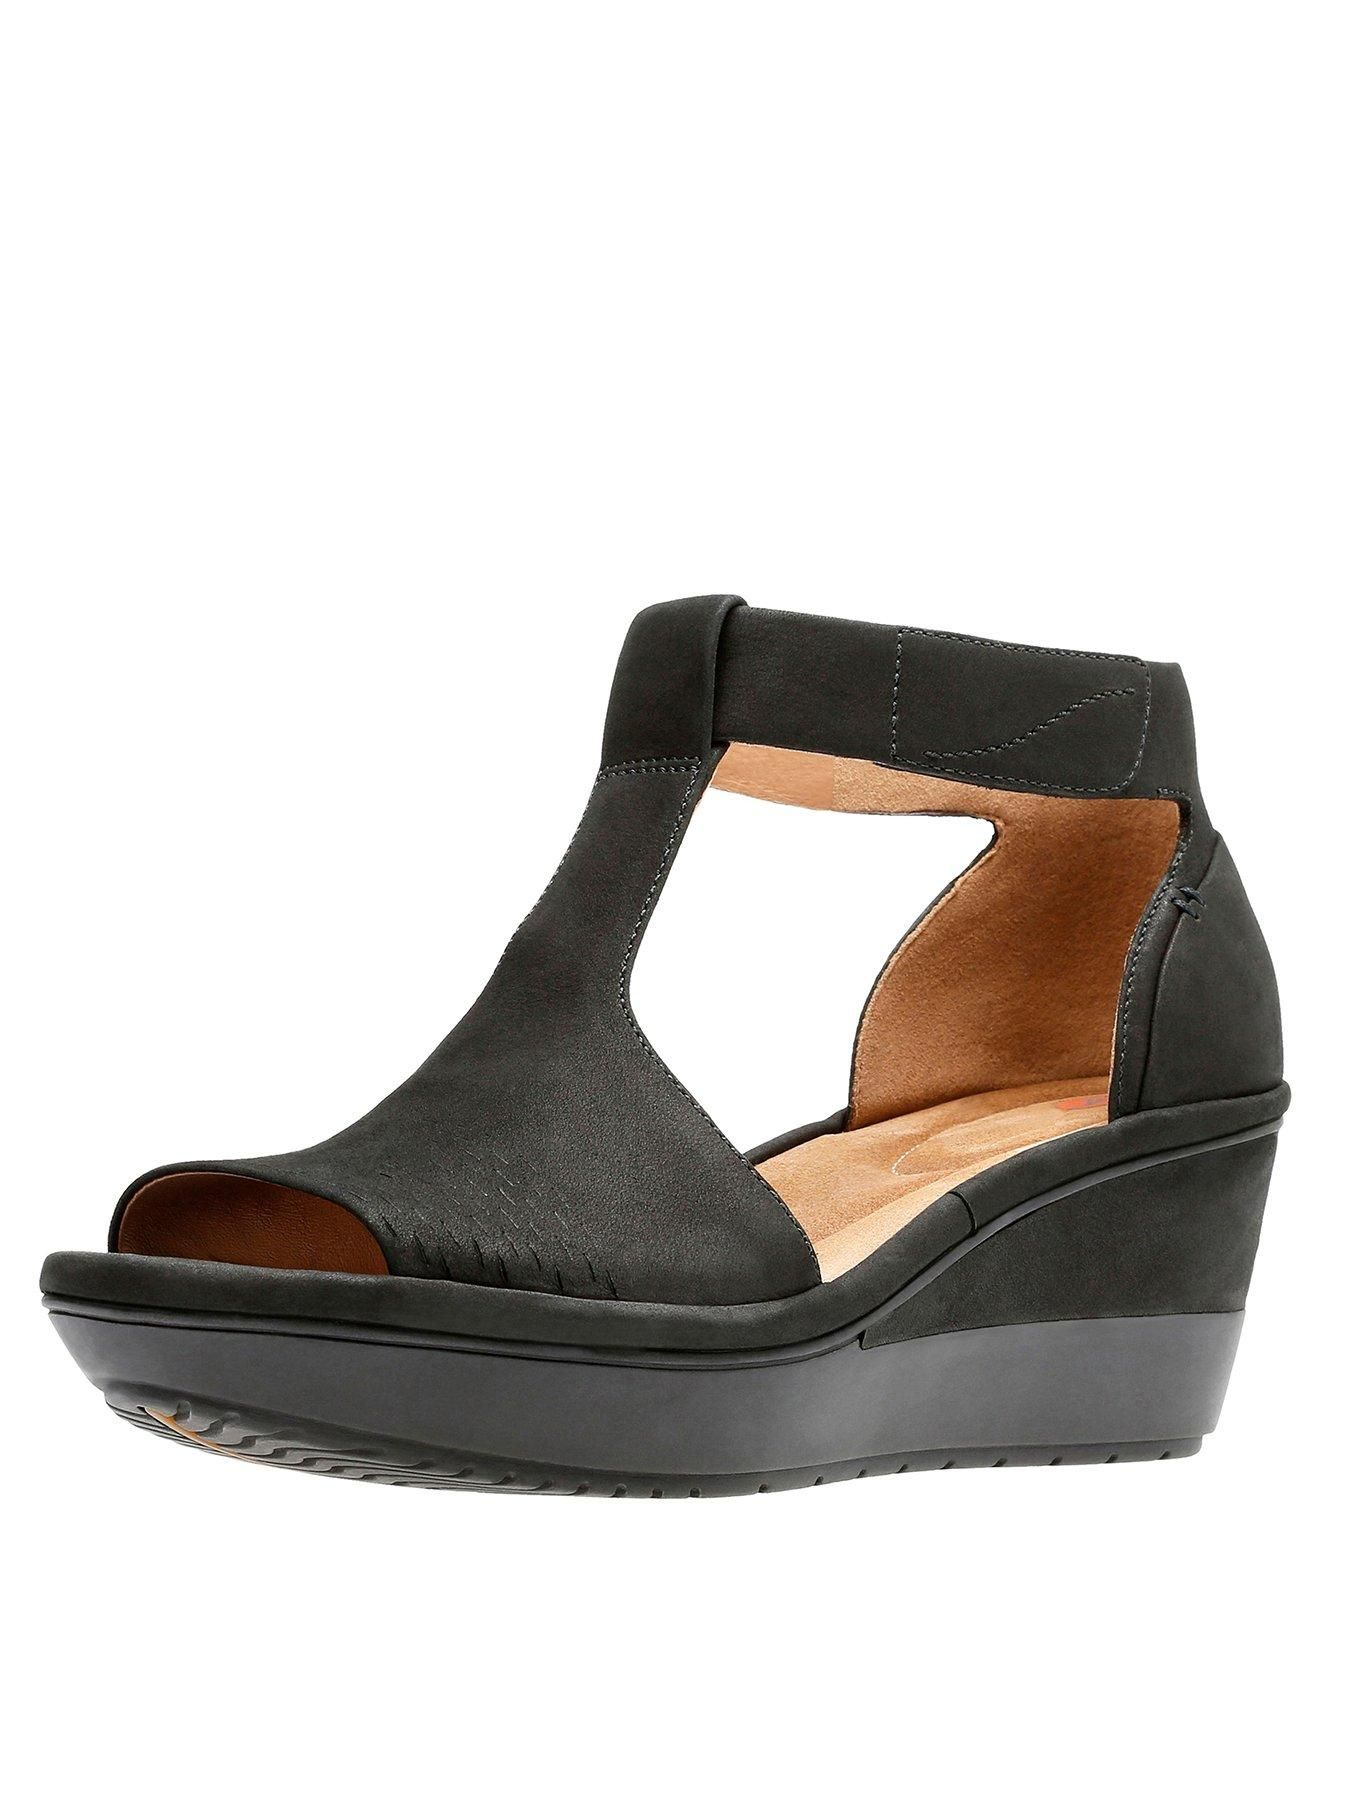 Clarks Wynnmere Avah T Bar Wedge Sandal Black Littlewoods With